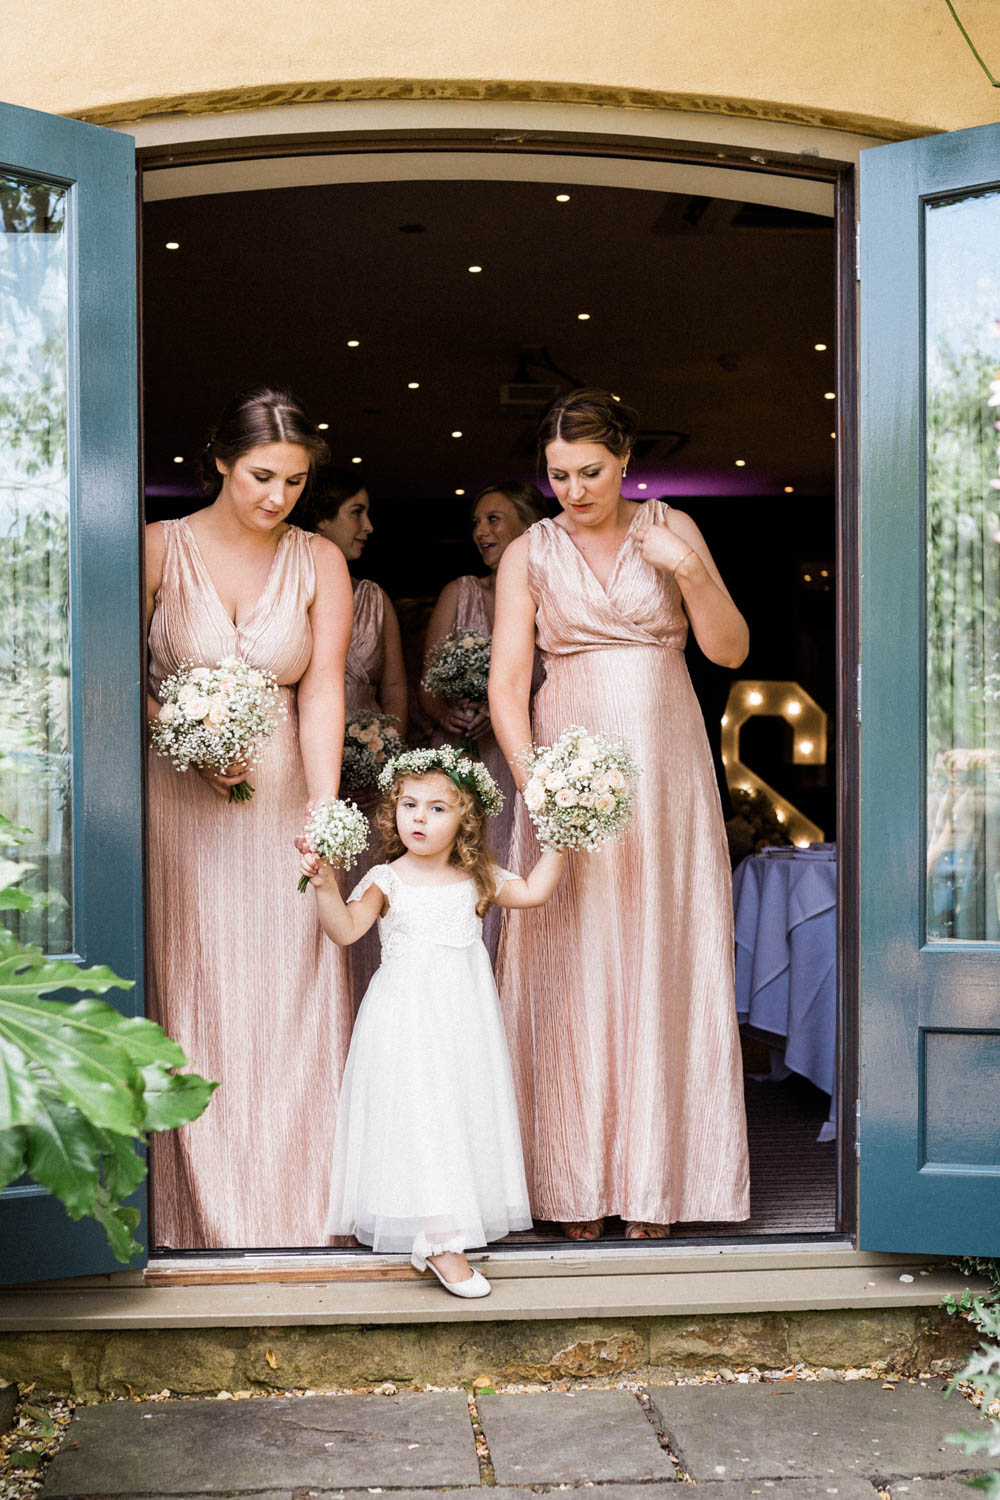 Special-Day-Photography-The-Manor-House-Hotel-Moreton-in-Marsh-Moreton-In-Marsh-Summer-Wedding-Bridesmaids-and-flower-girl-preparing-to-walk-down-the-aisle.jpg